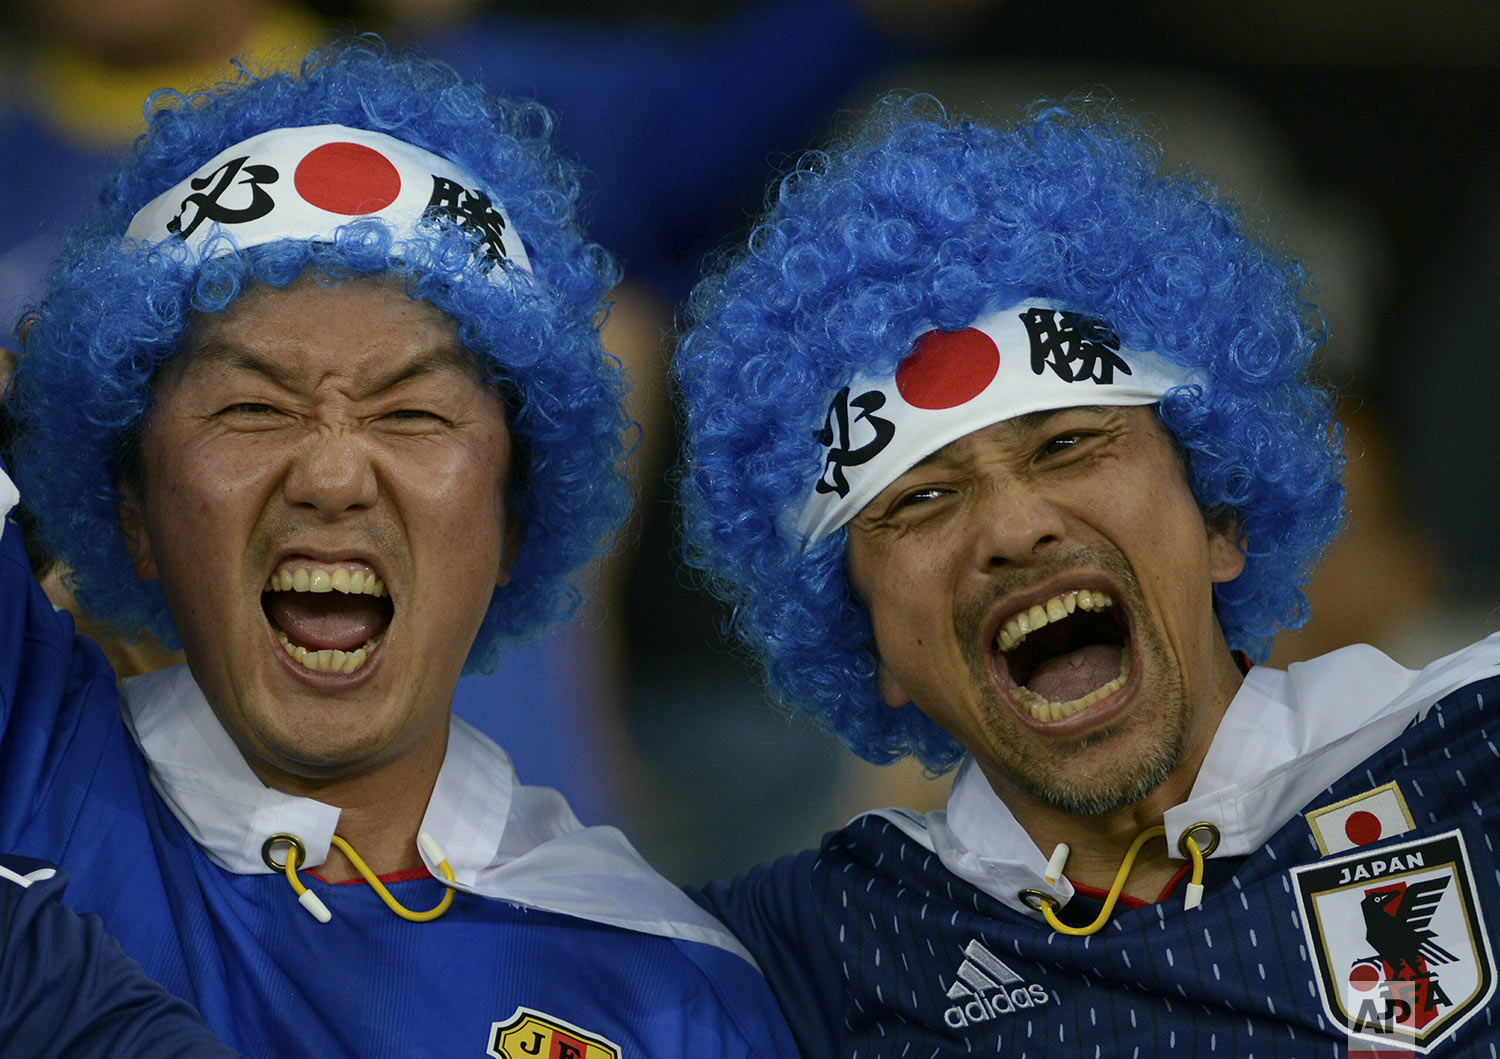 Japan soccer fans cheer prior to their team's Copa America Group C soccer match against Ecuador at Mineirao stadium in Belo Horizonte, Brazil, Monday, June 24, 2019. (AP Photo/Eugenio Savio)